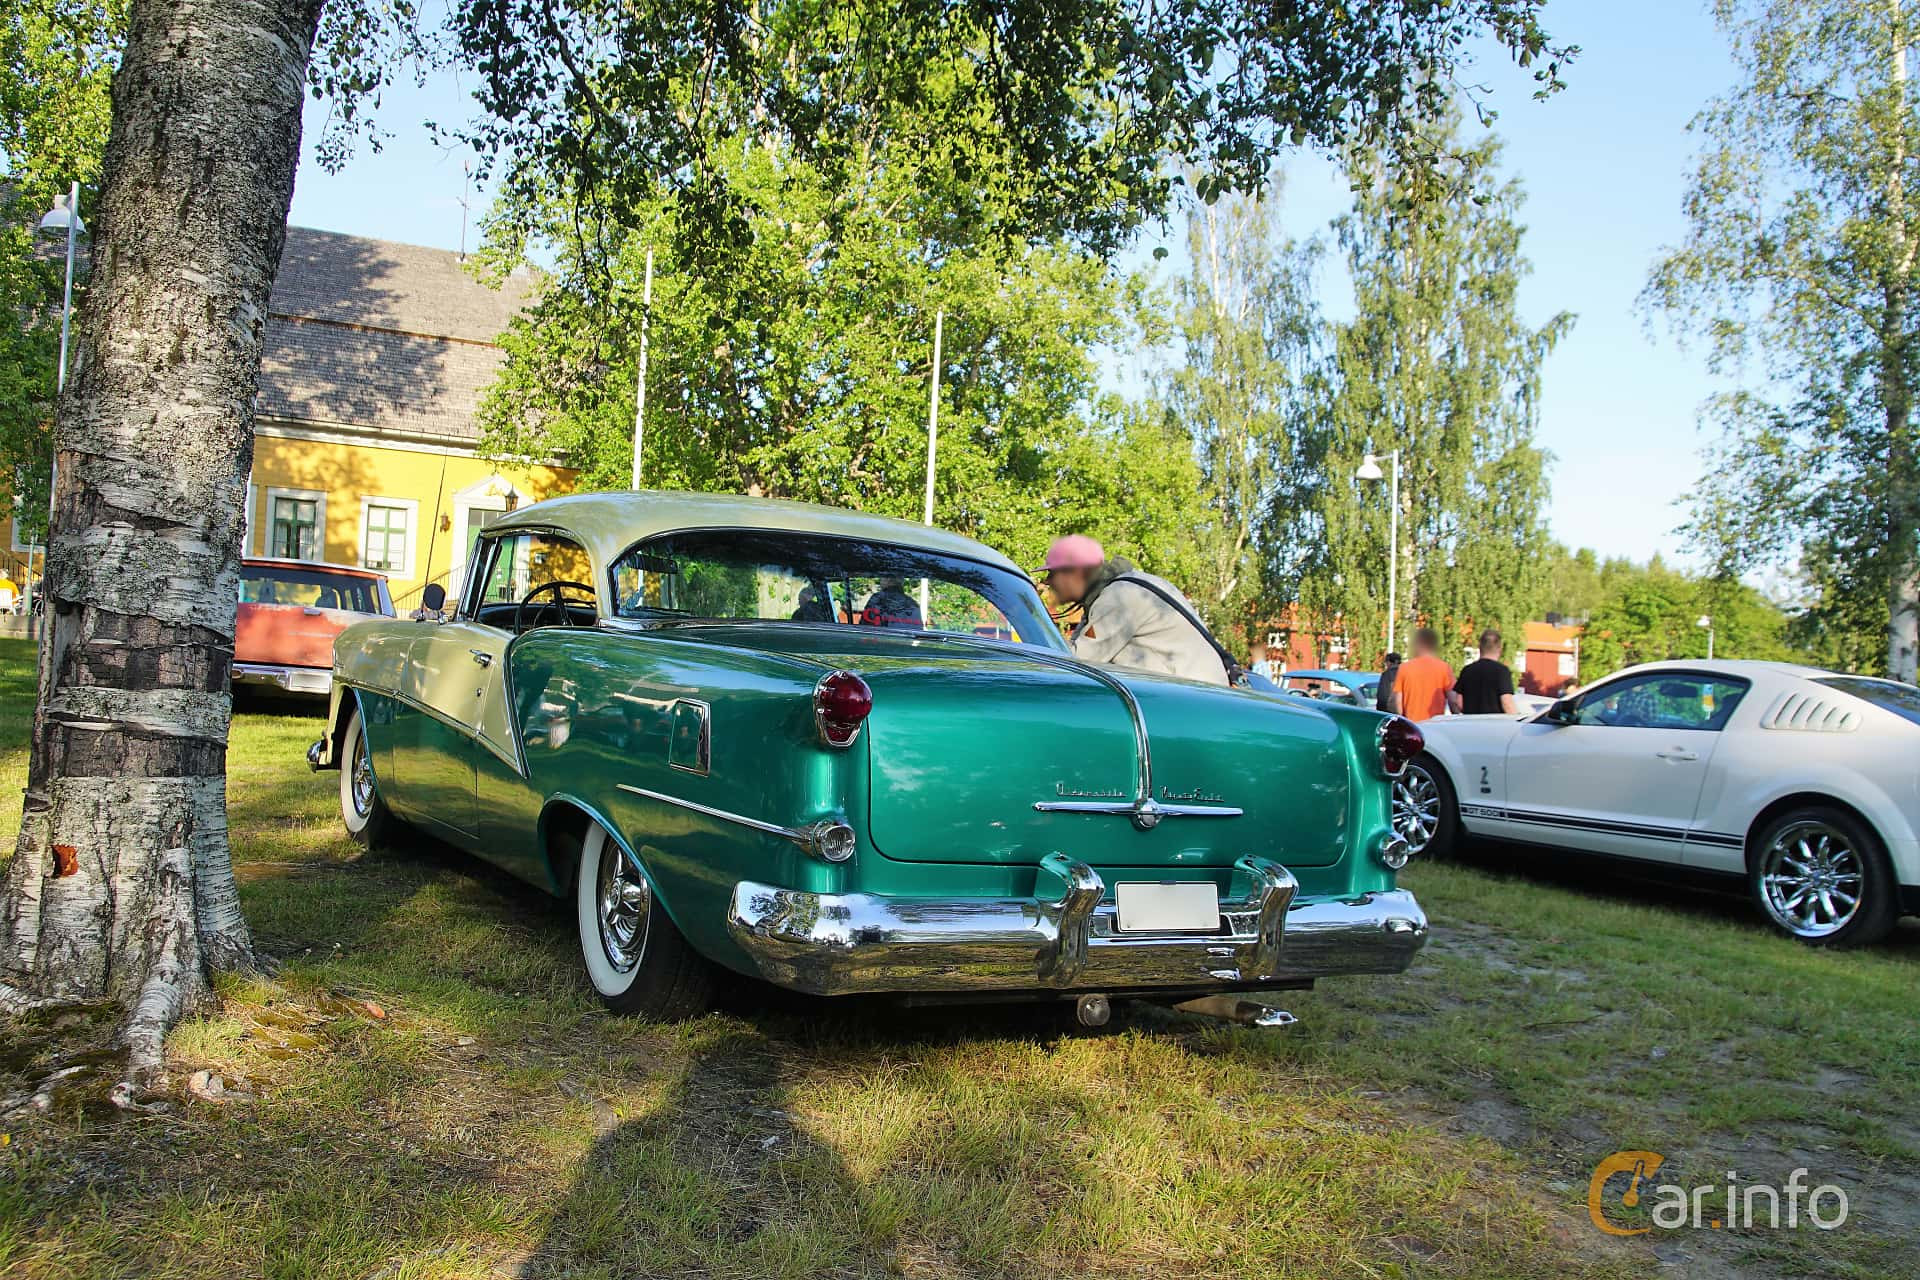 Oldsmobile Ninety-Eight Holiday Coupé 5.3 V8 Hydra-Matic, 188hp, 1954 at Onsdagsträffar på Gammlia Umeå 2019 vecka 28